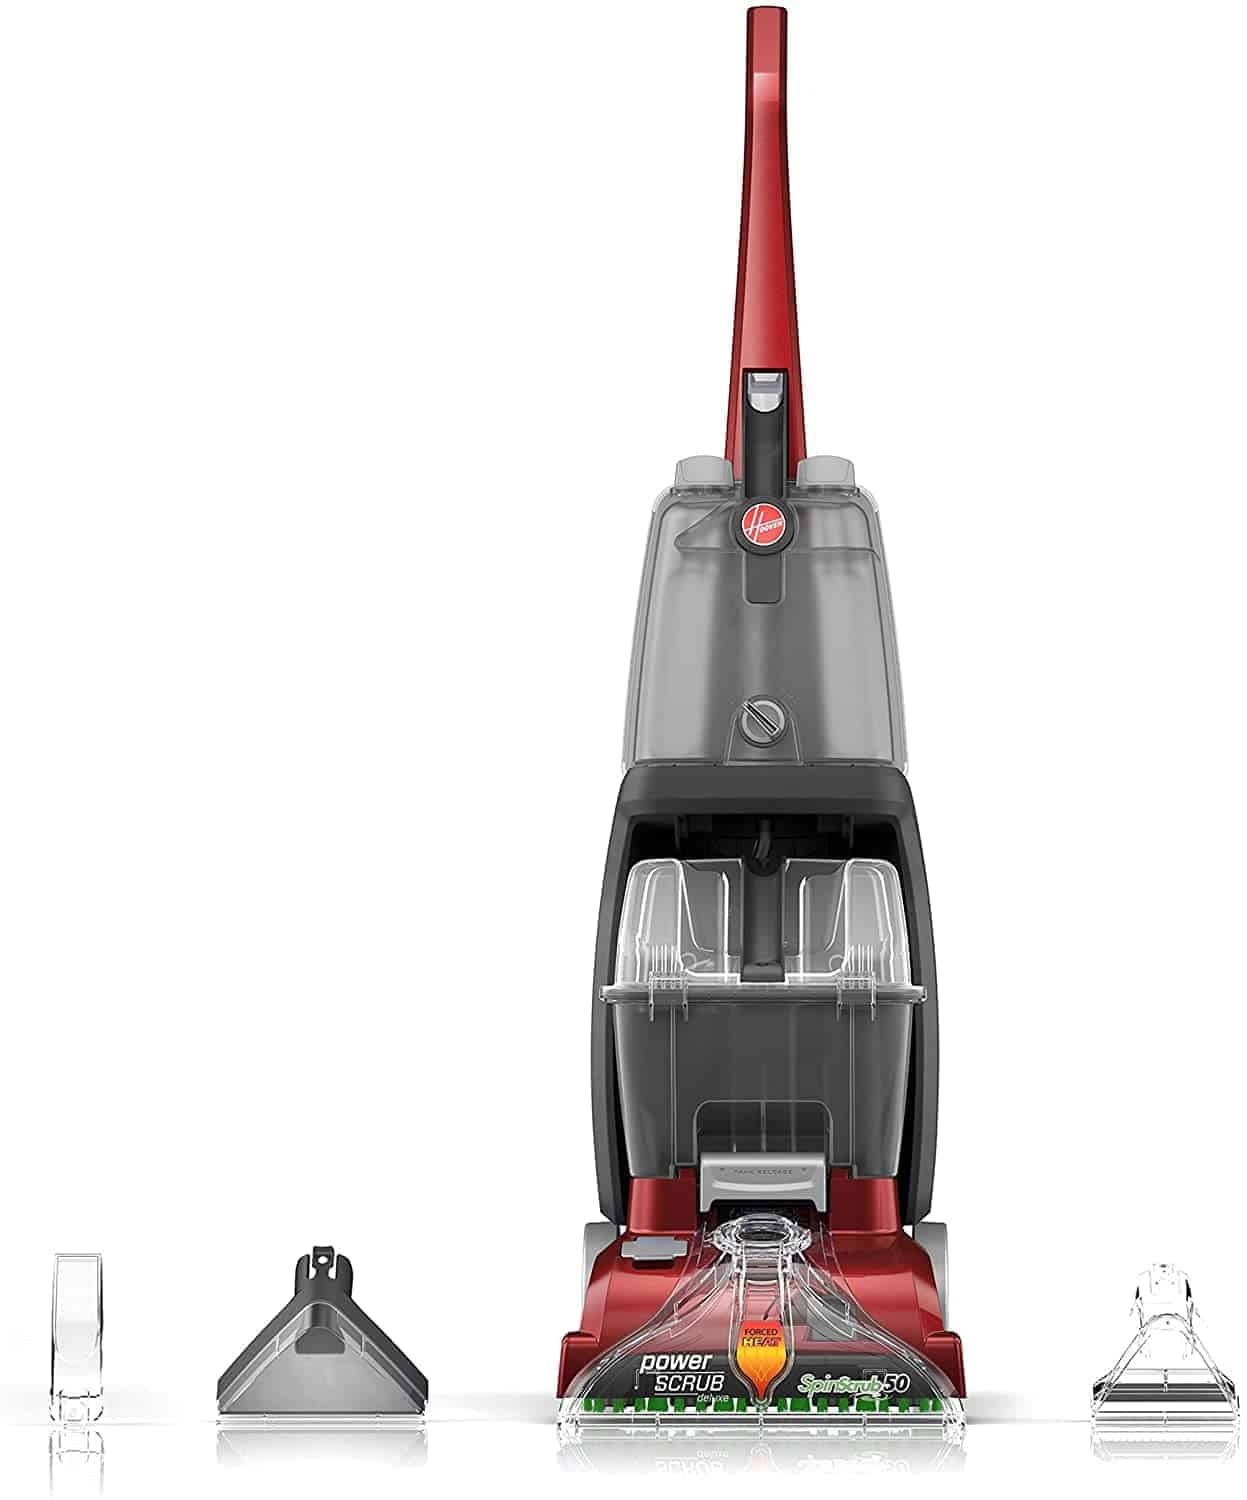 Best cheap carpet vacuum cleaner: Hoover PowerDash FH50700